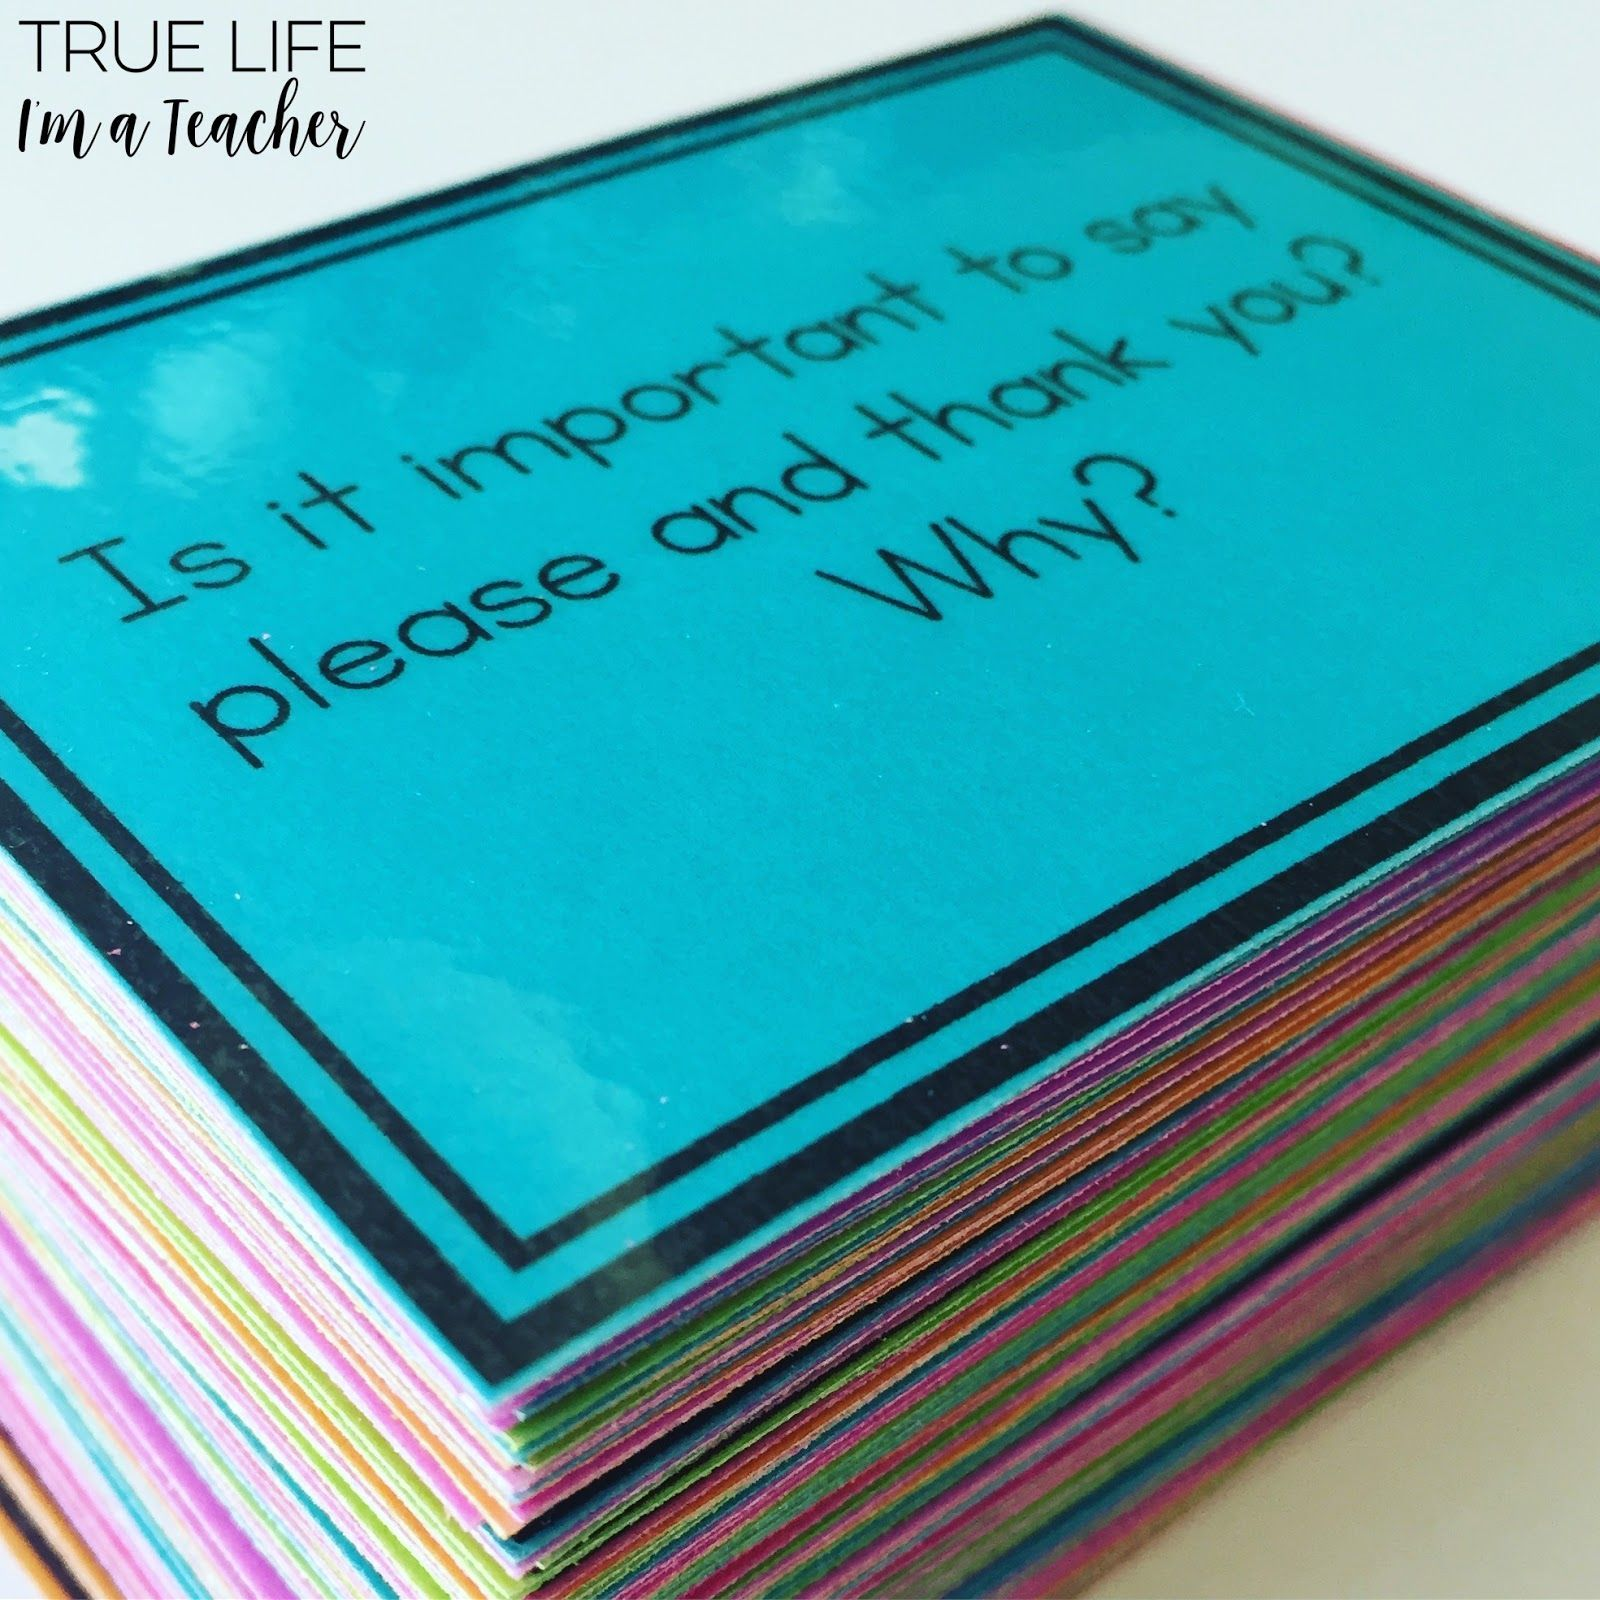 How to Have Meaningful Classroom Conversations | True Life: I'm a Teacher        How to Have Meanin